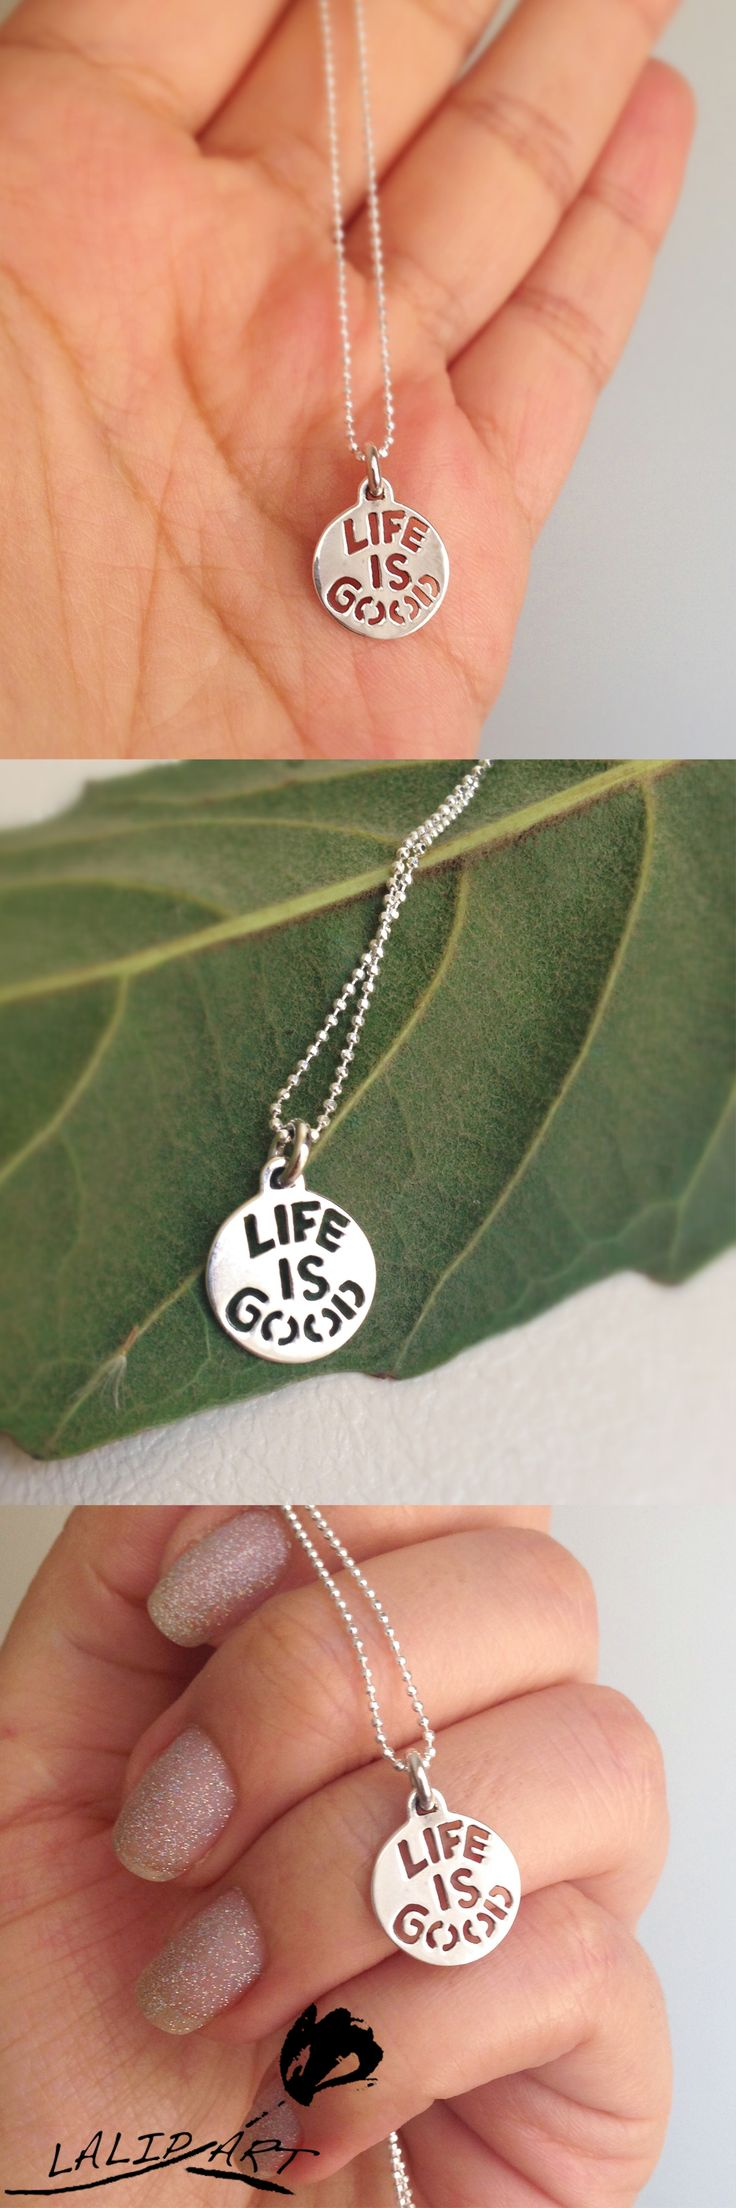 written silver necklace - life is good necklace - silver tiny disc charm - phrasal disc charm - silver written pendant -life is good pendant.By LalipArt